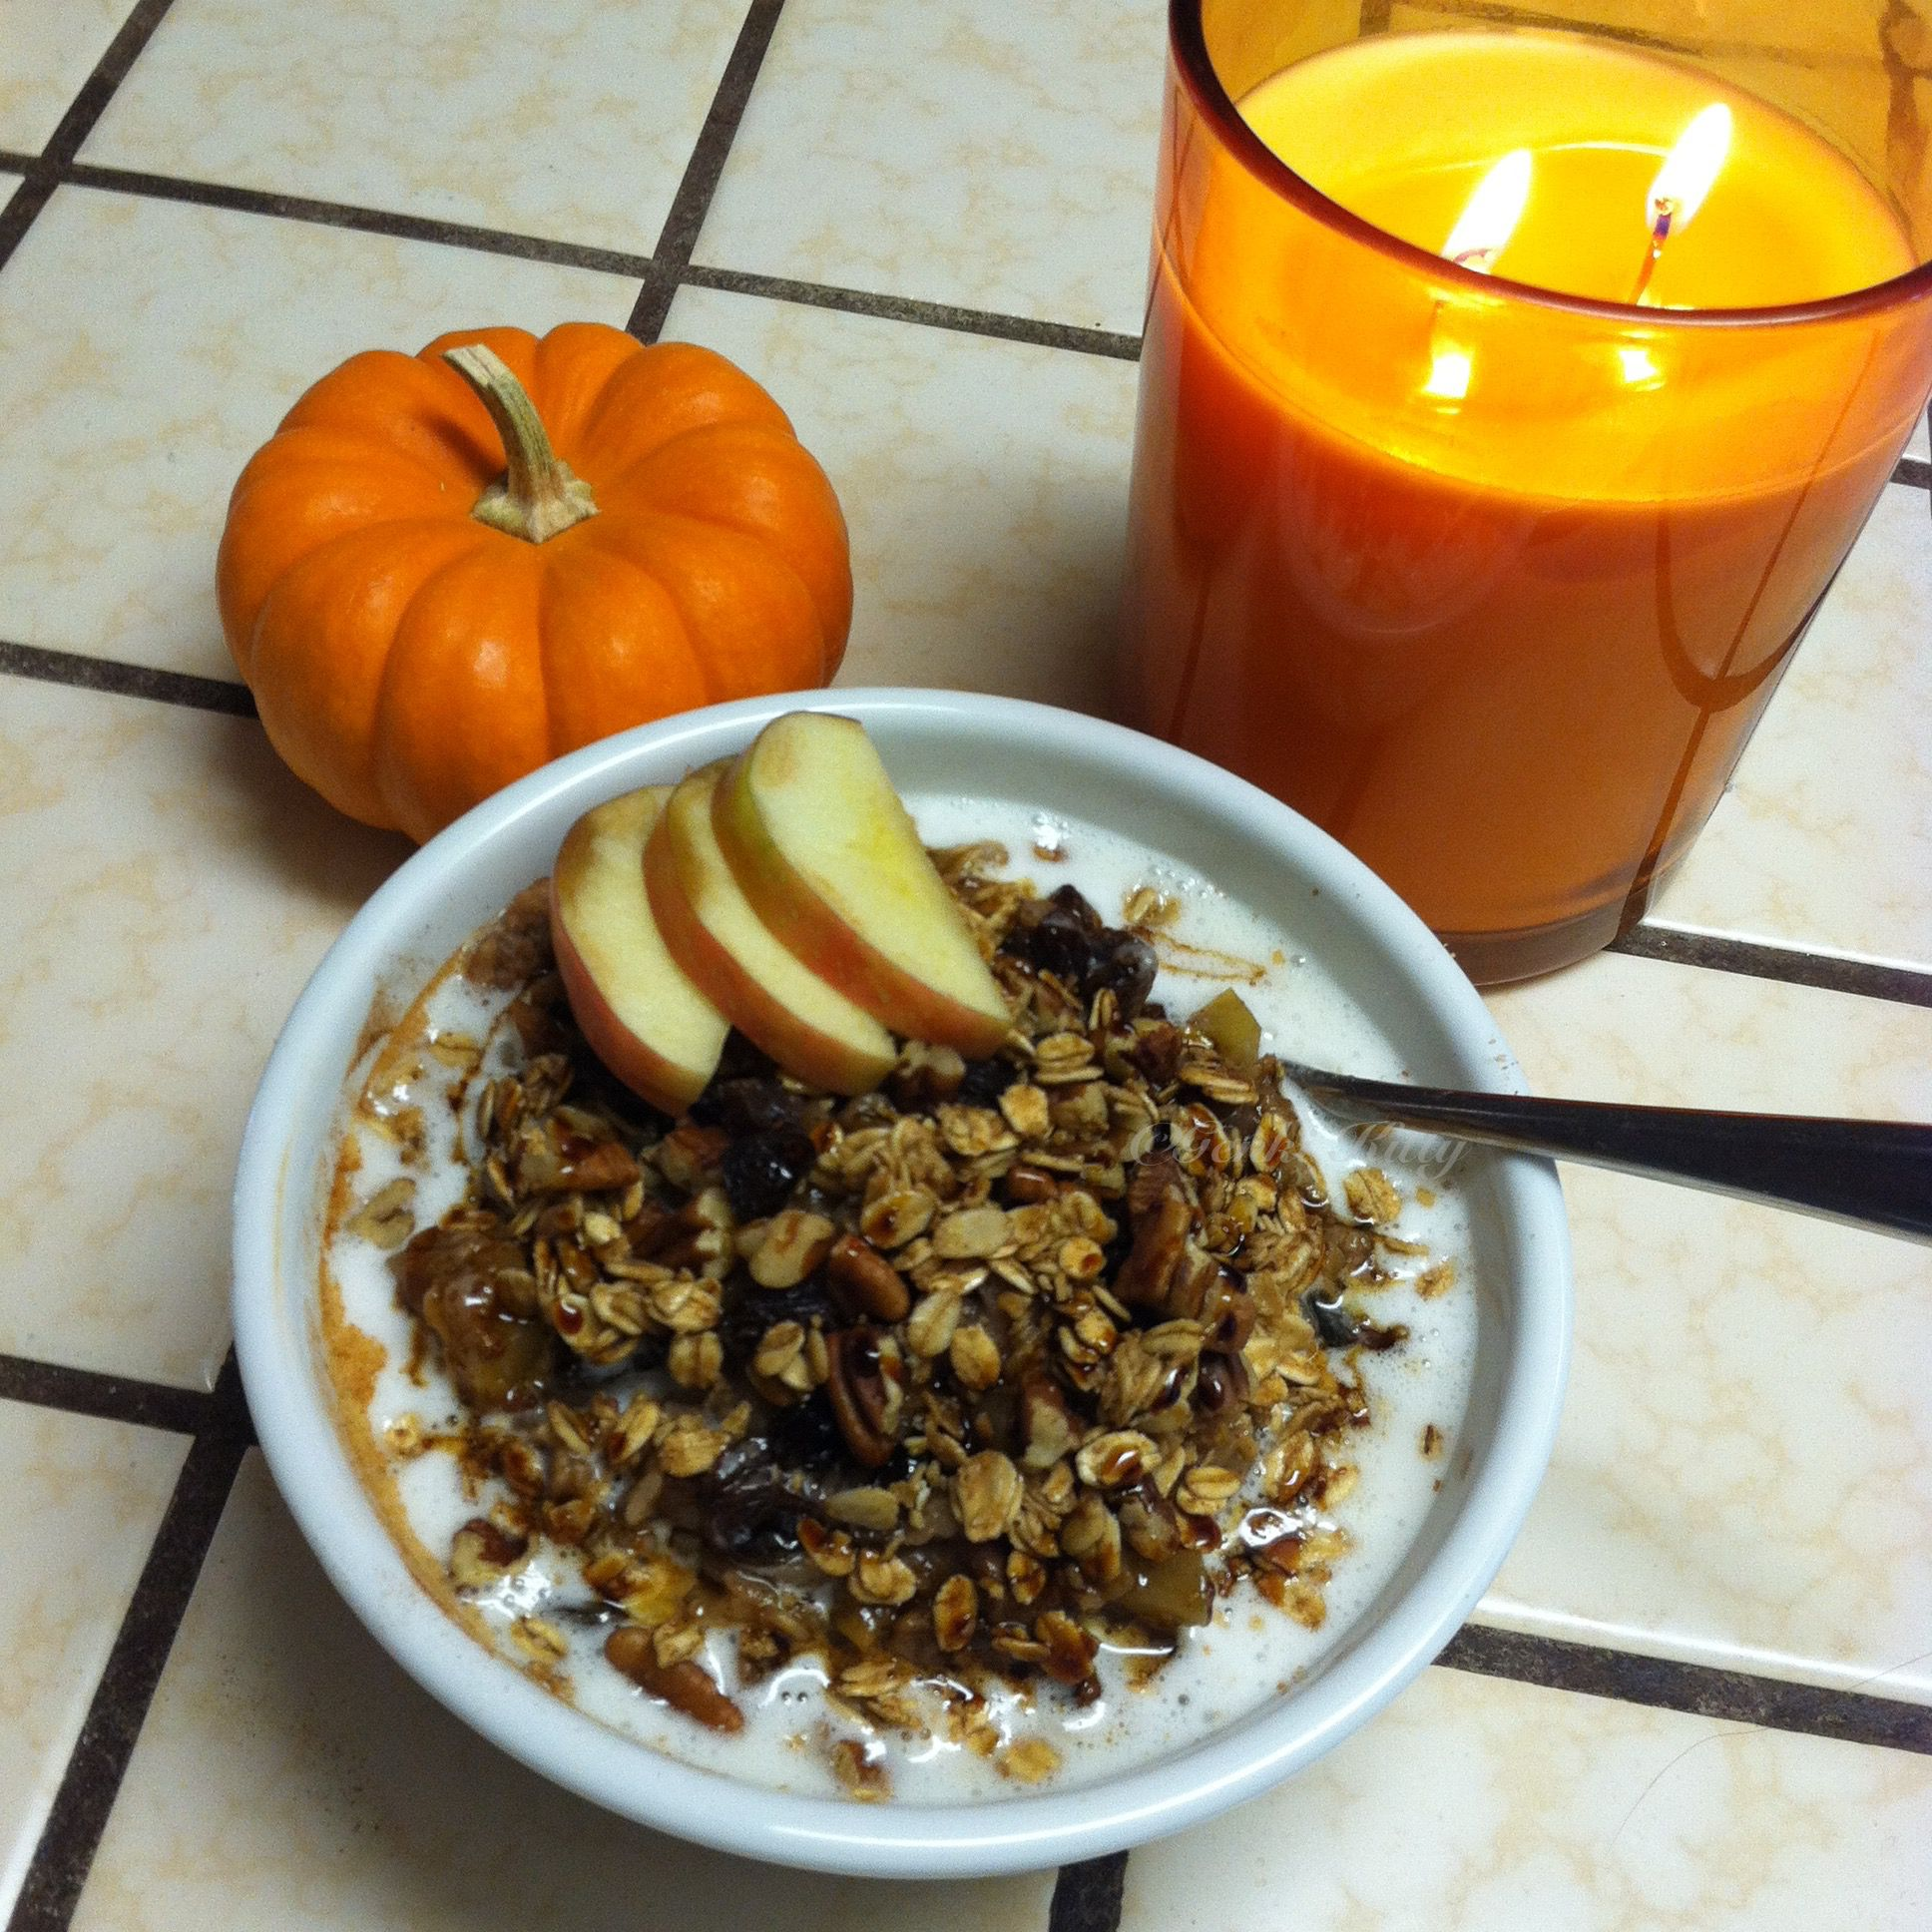 Spice Apple Breakfast Bowl